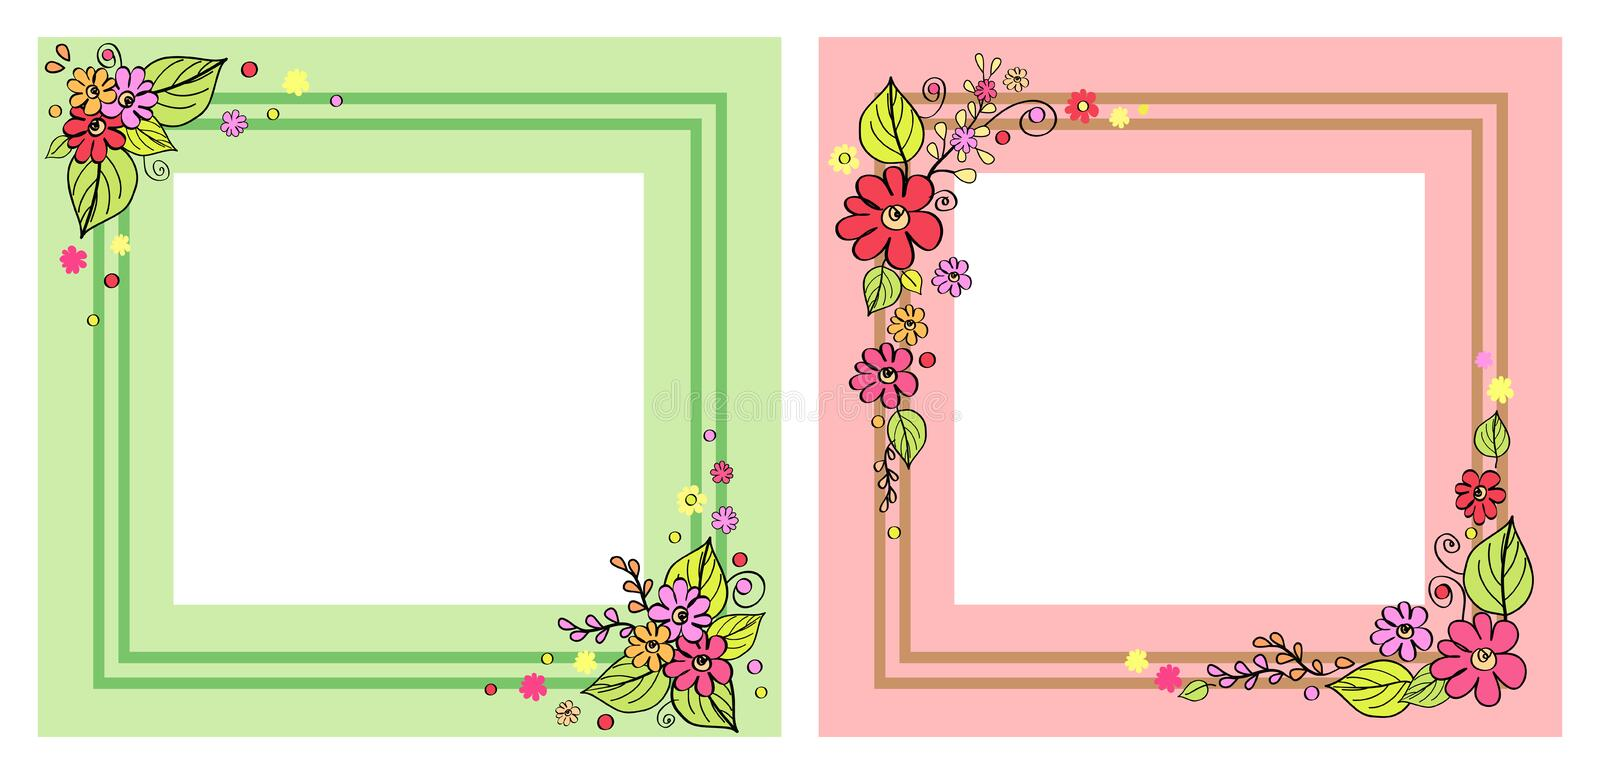 Set Of Photo Frames In Pink And Green Color Vector Stock Vector ...